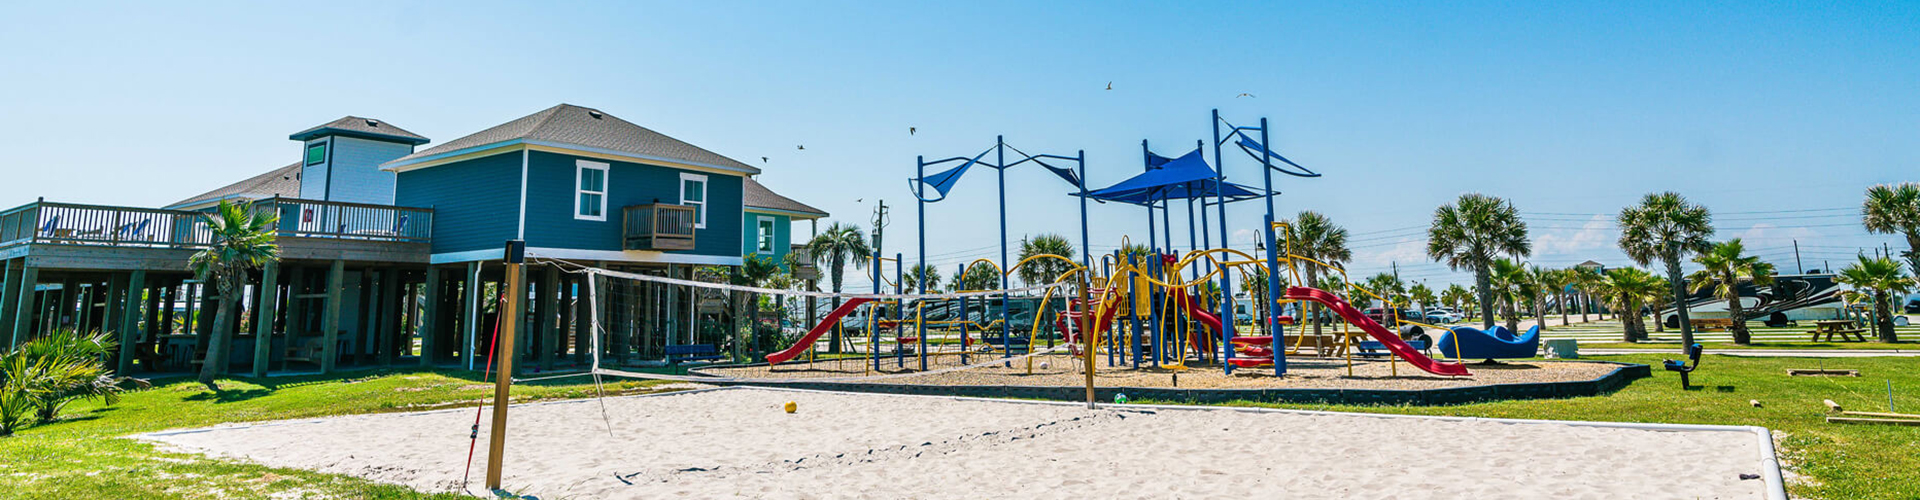 rv-resort-galveston-texas